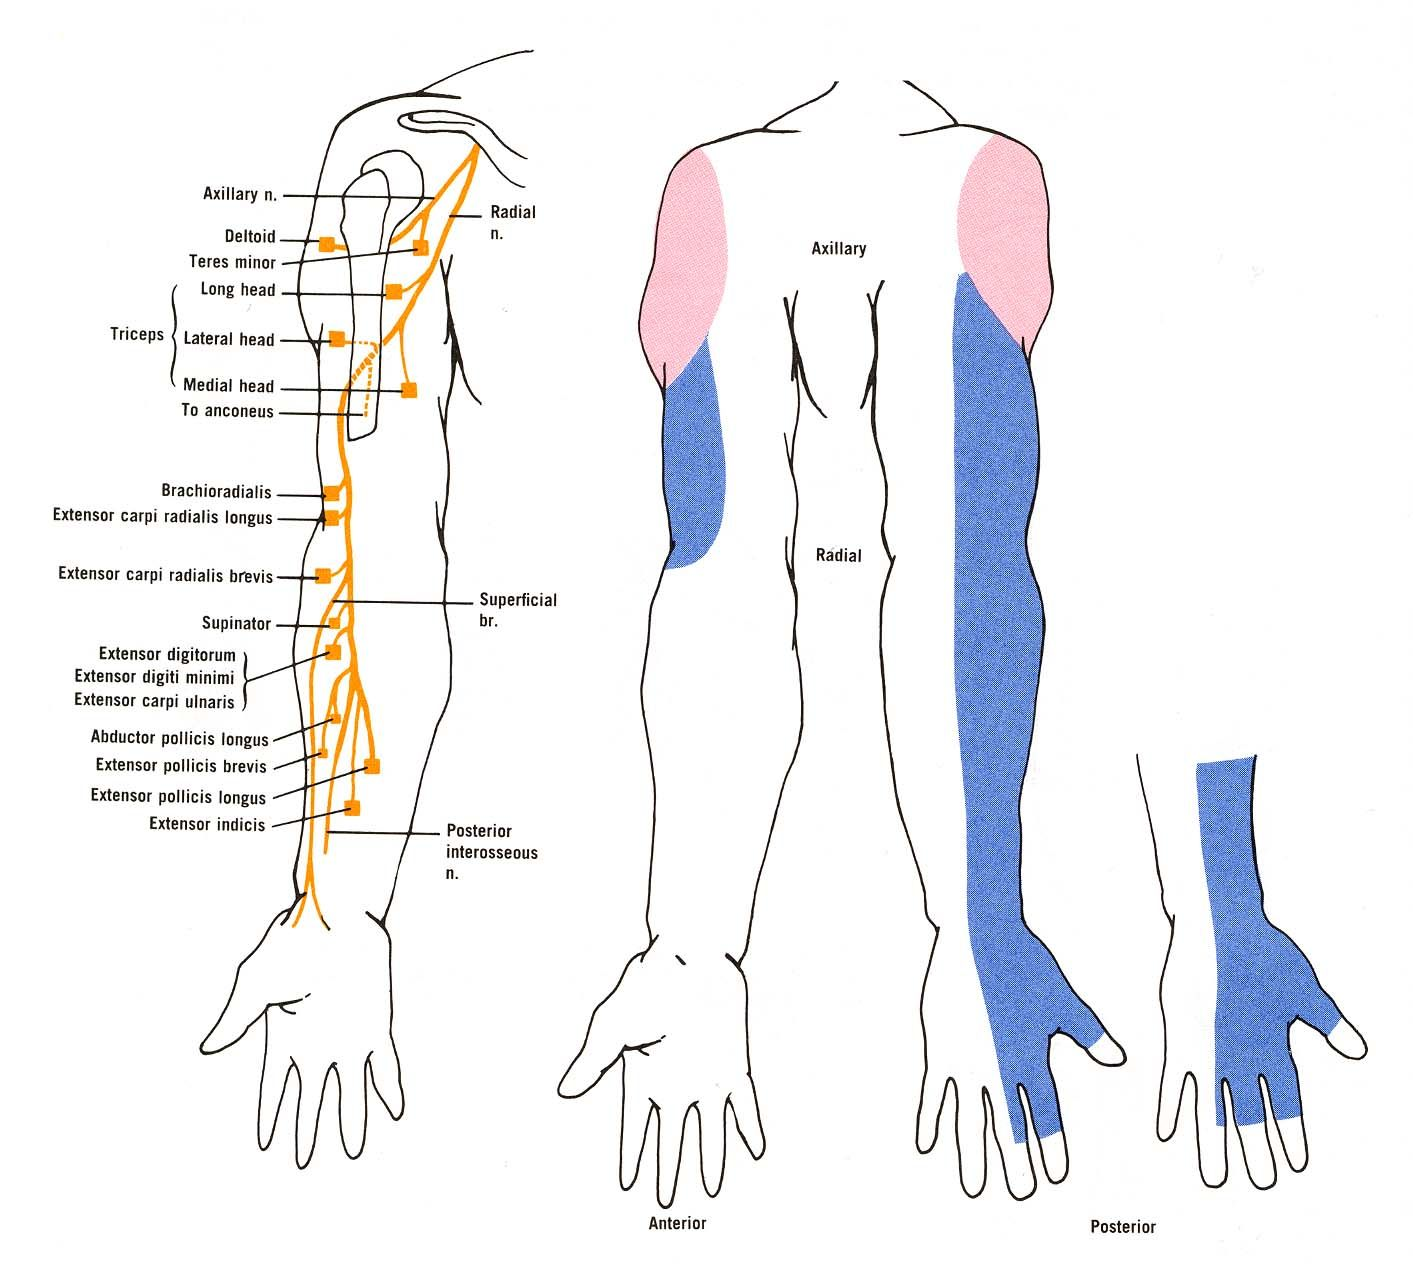 Diagram Of The Muscular And Cutaneous Branches Of The